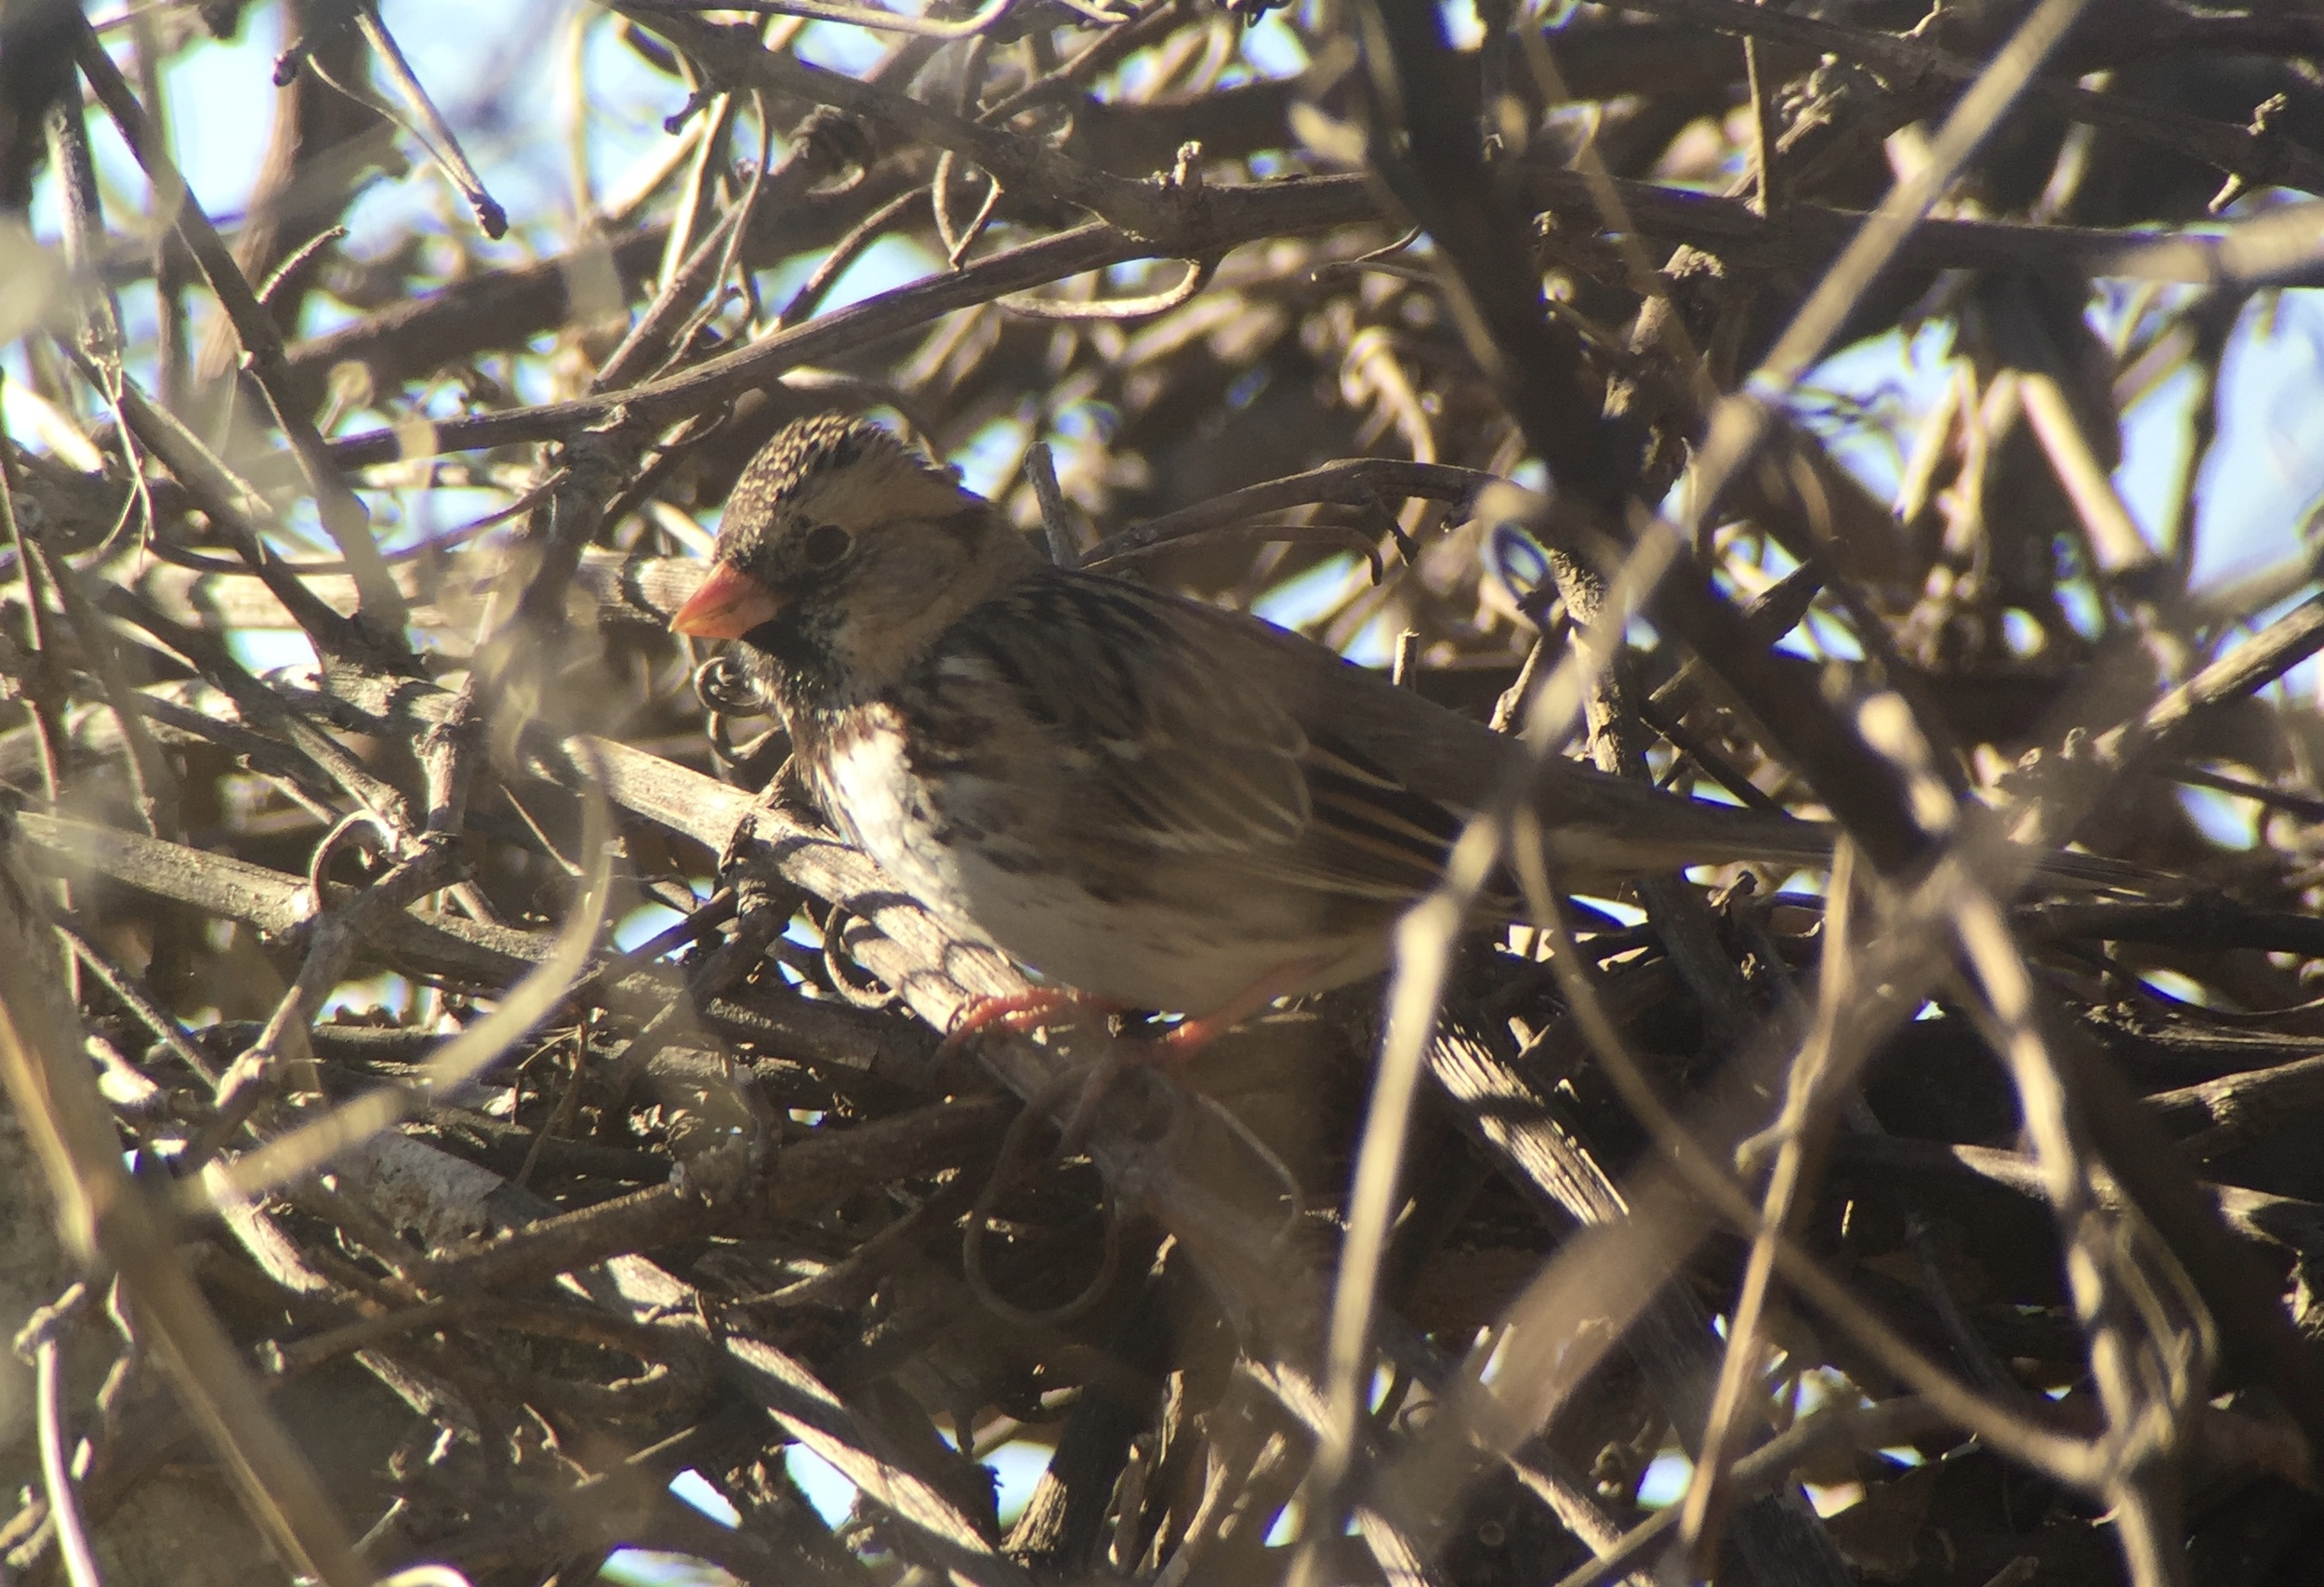 Digiscoped image of a Harris's Sparrow, using iPhone 6 + Swarovski scope with Phone Skope adapter